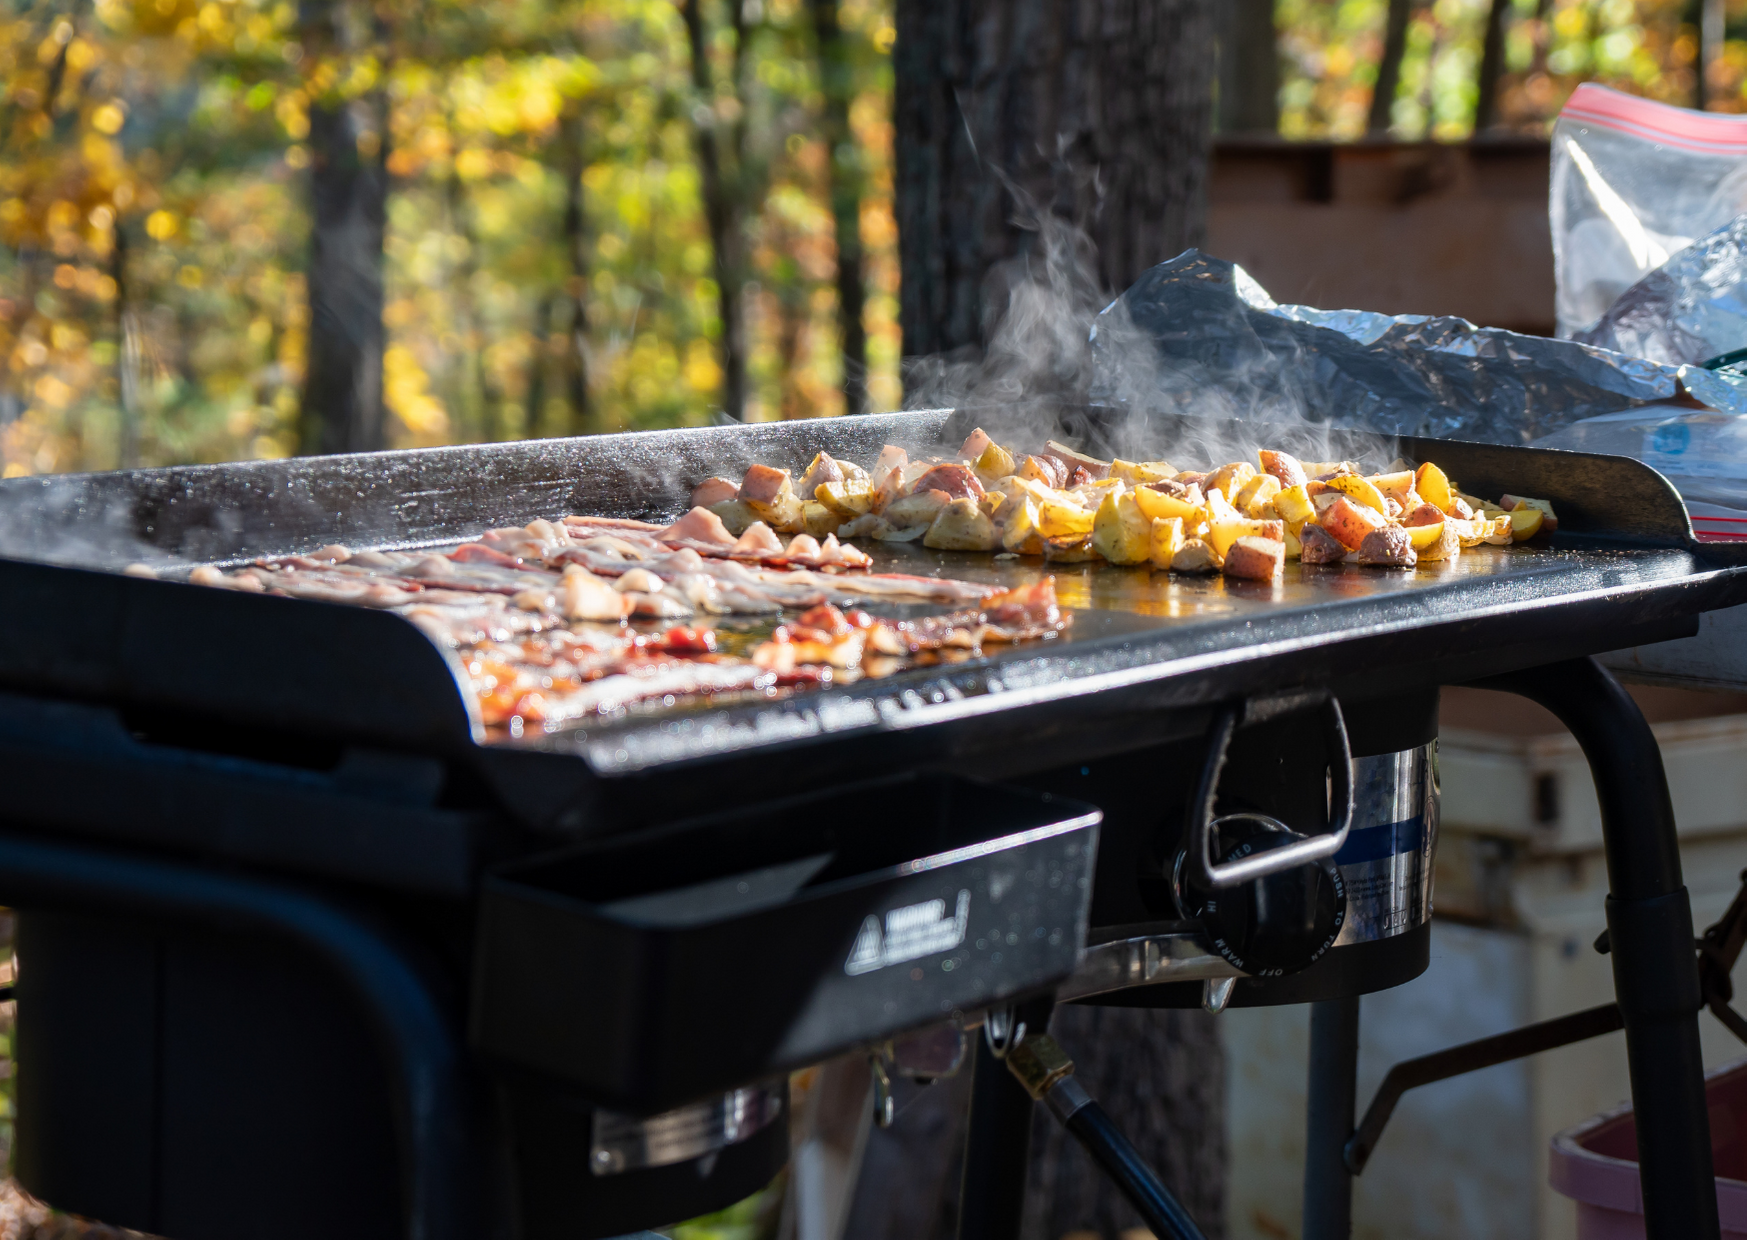 Cooking some food using Outdoor Griddle of Best Things to Cook on an Outdoor Griddle